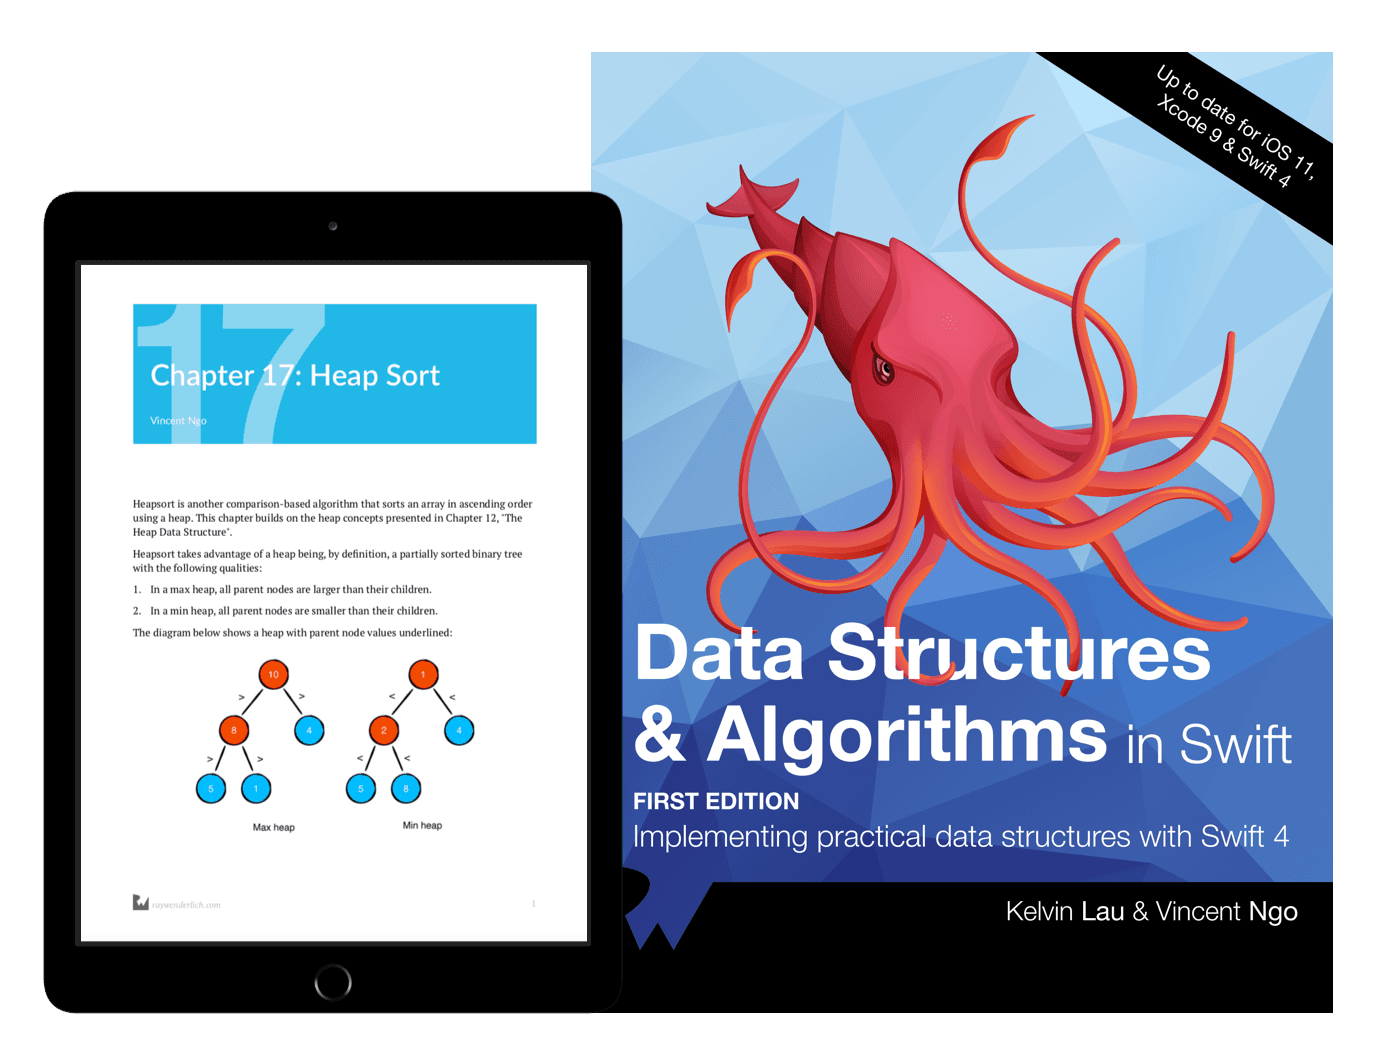 Data Structures & Algorithms in Swift Book